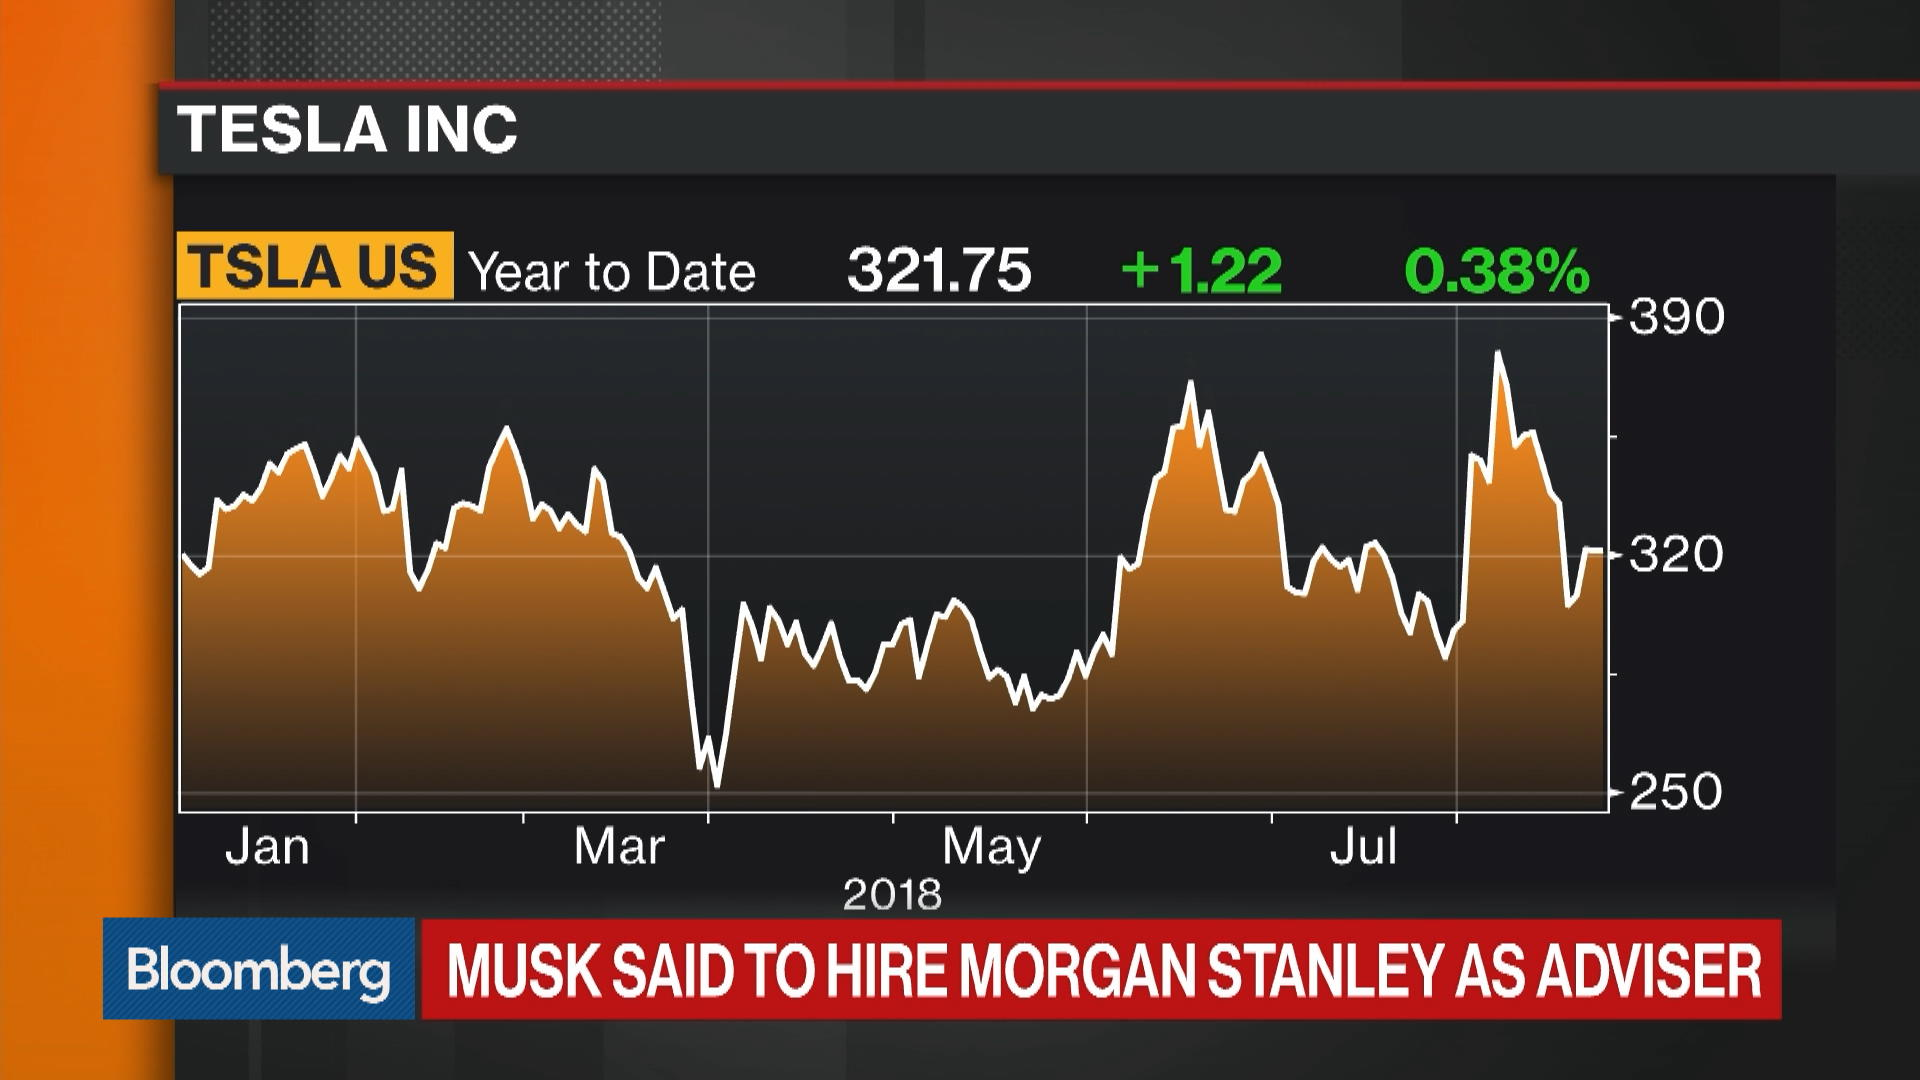 https://www bloomberg com/news/videos/2018-08-22/new